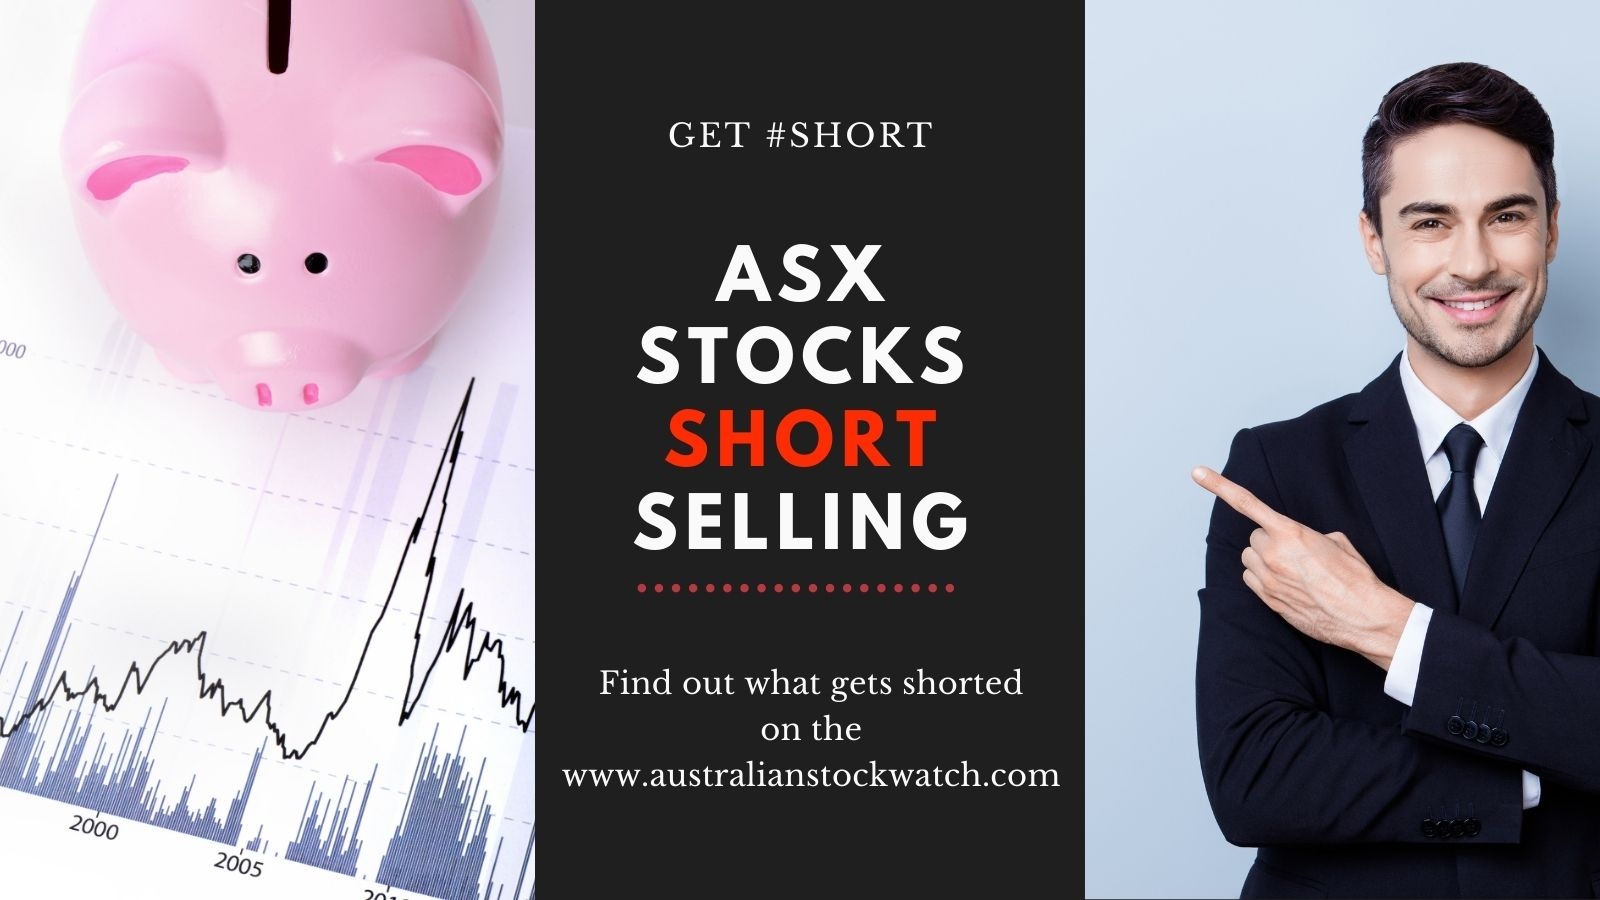 stocks shorted on asx